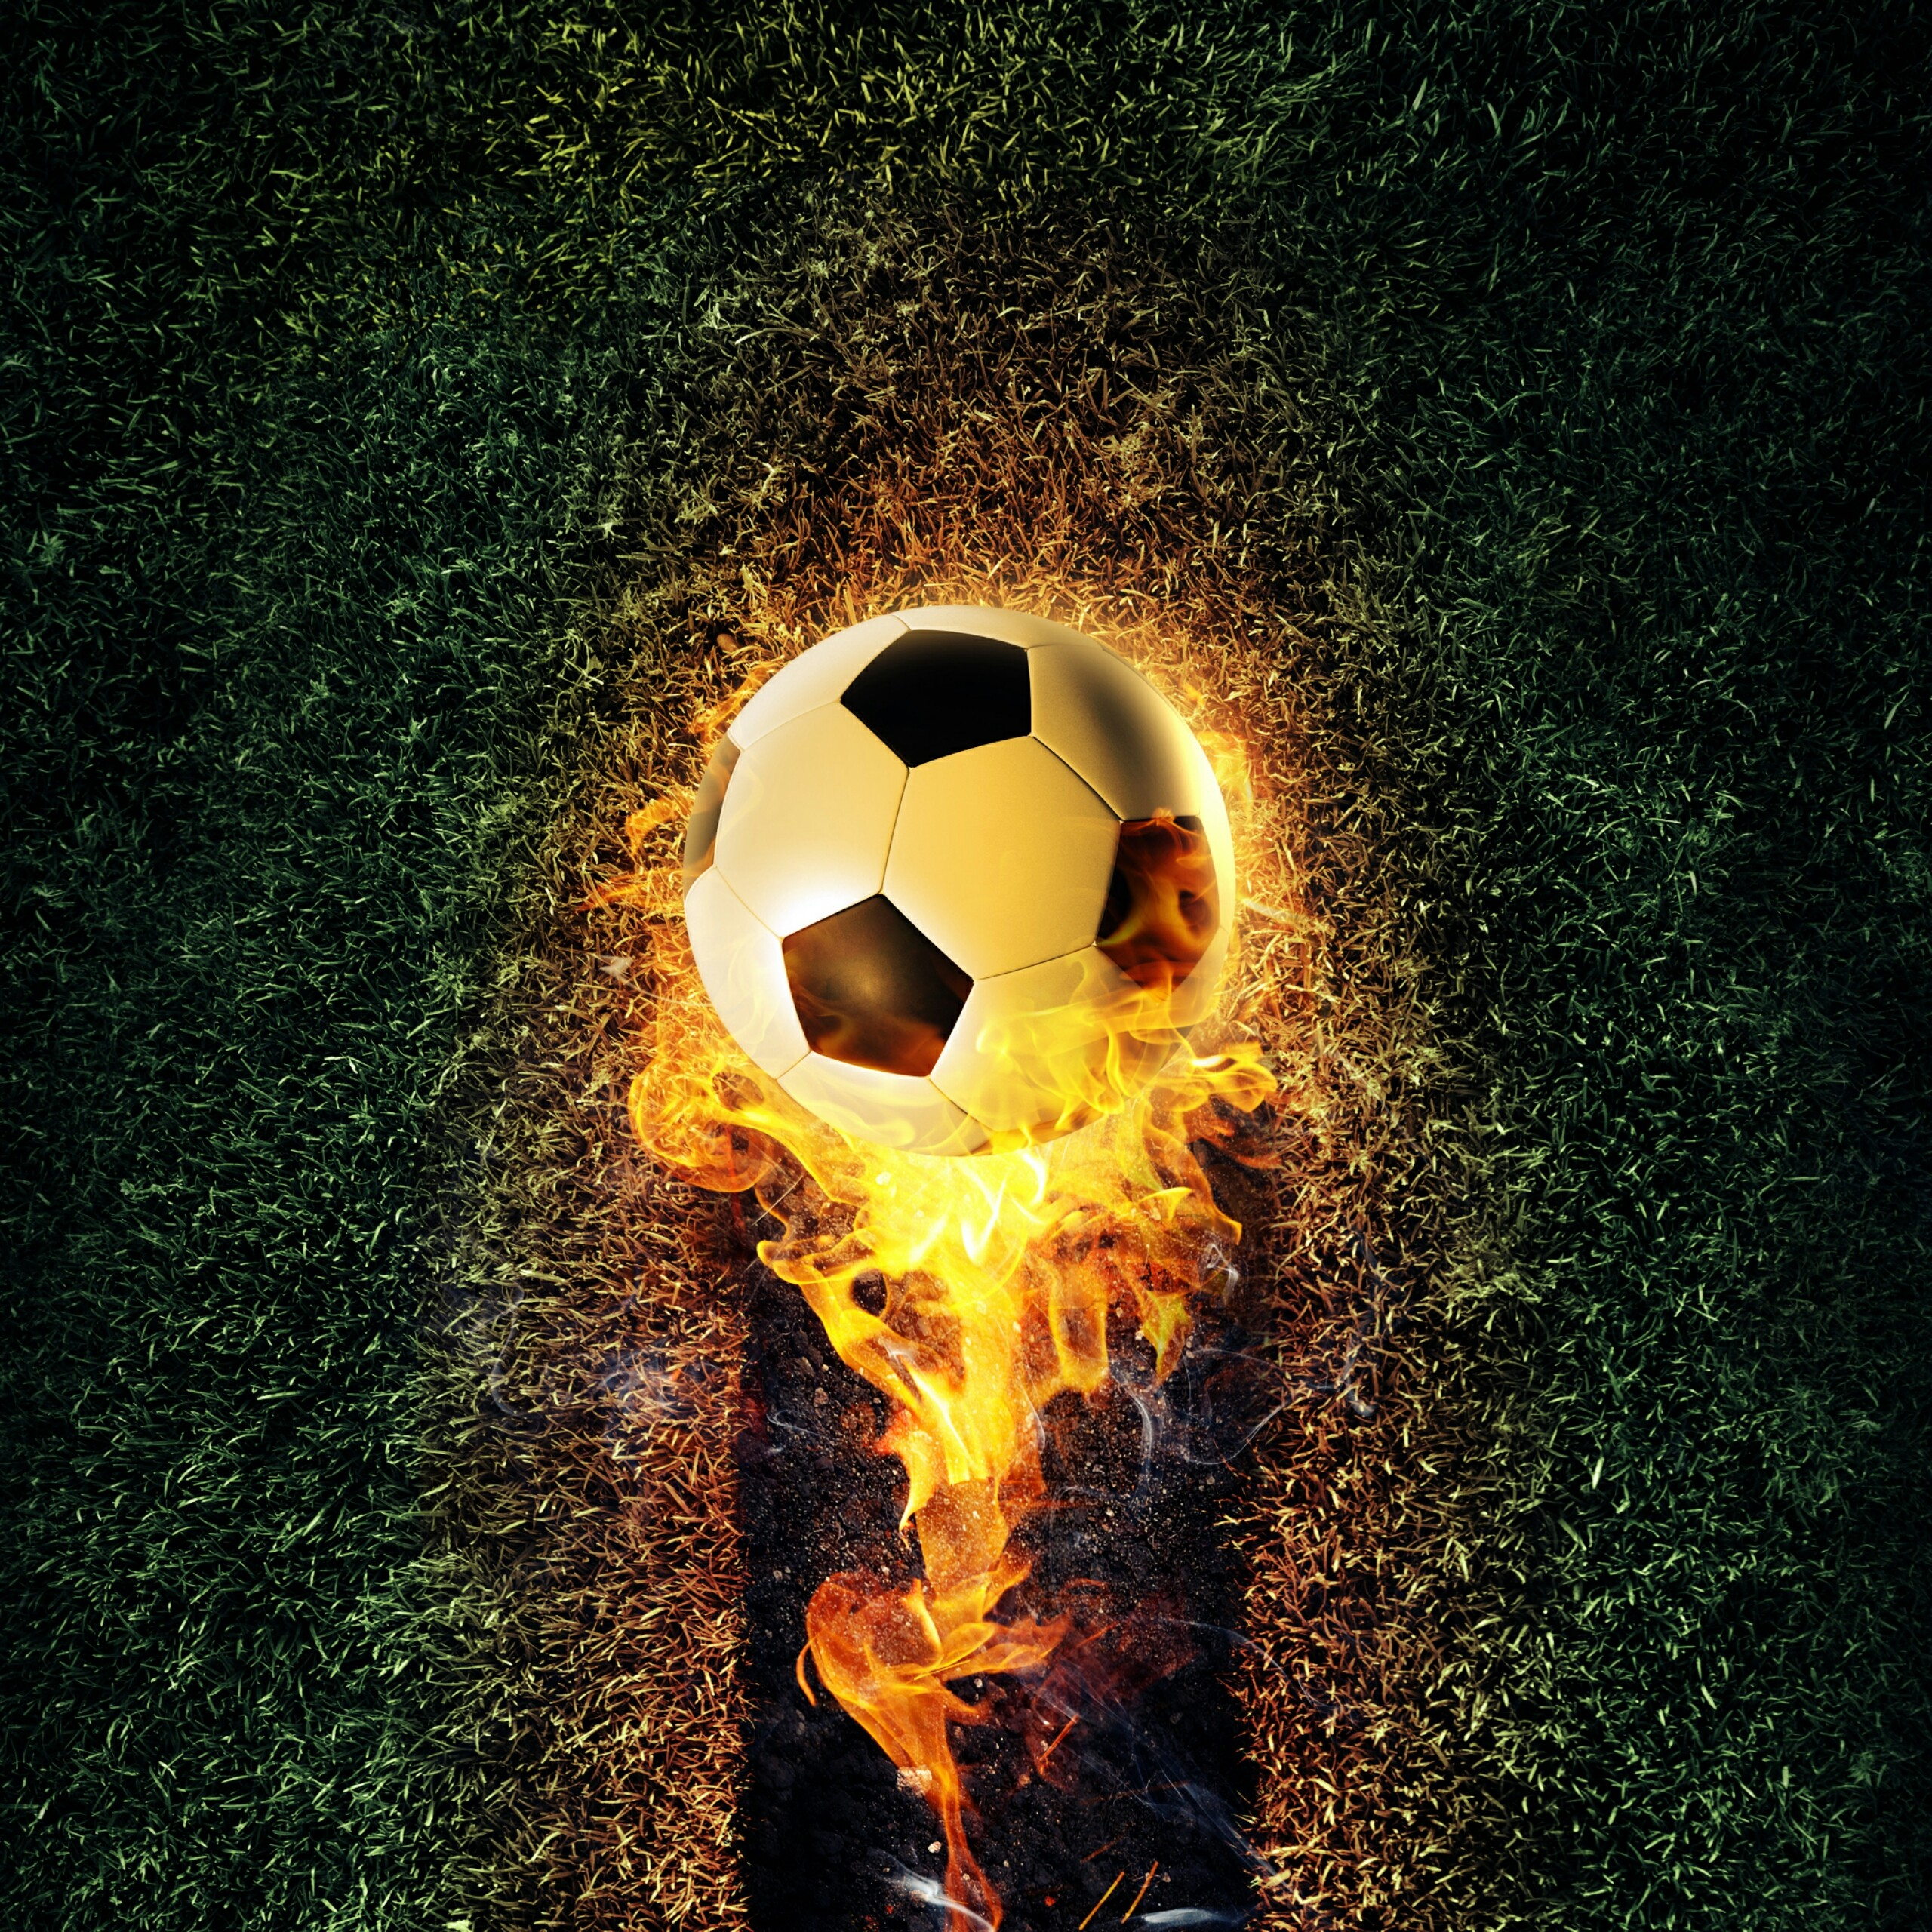 Wallpaper Soccer Ball Posted By Sarah Tremblay